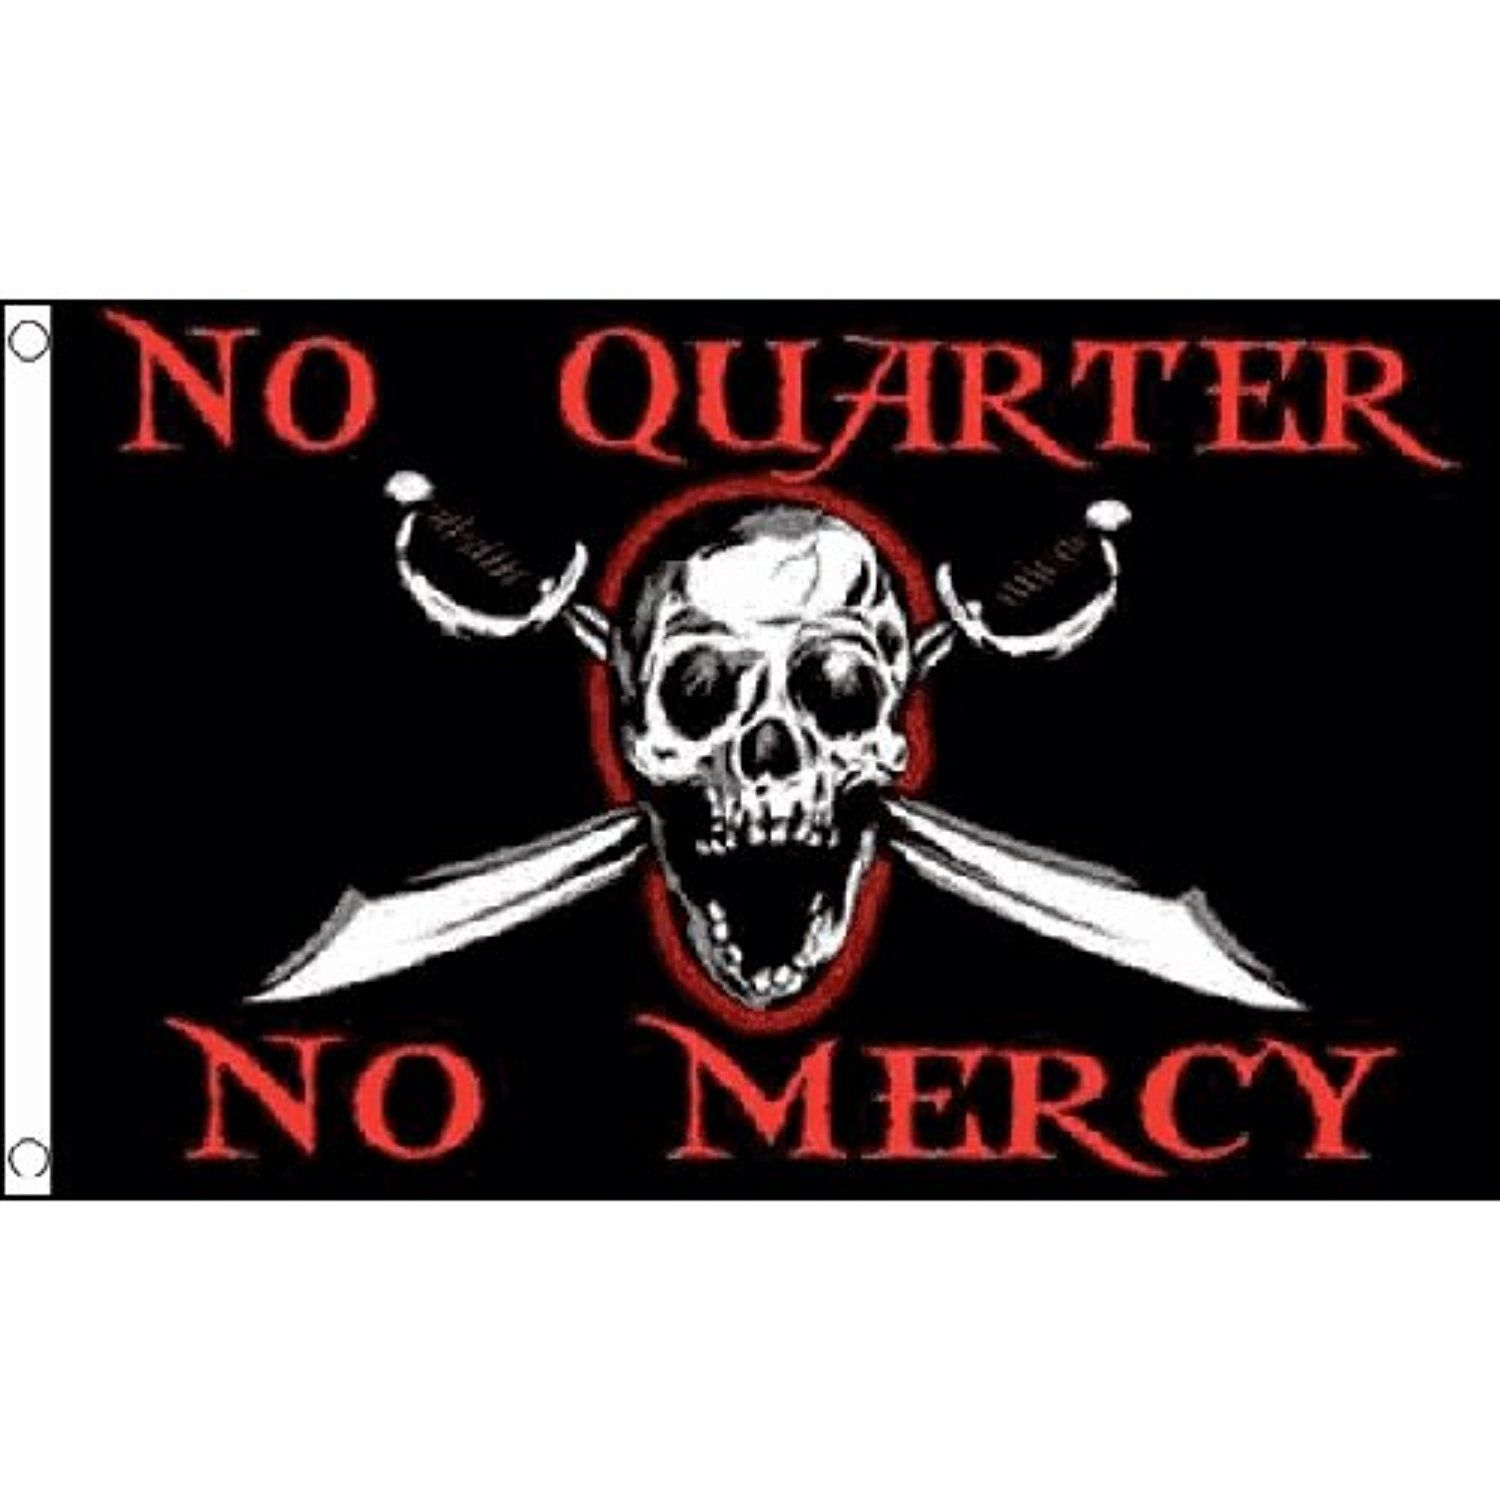 No Quarter No Mercy Flag 5ft X 3ft Pirate Jolly Roger Halloween Banner Awesome Products Selected By Anna Churchill No Quarter Pirate Flag Halloween Banner